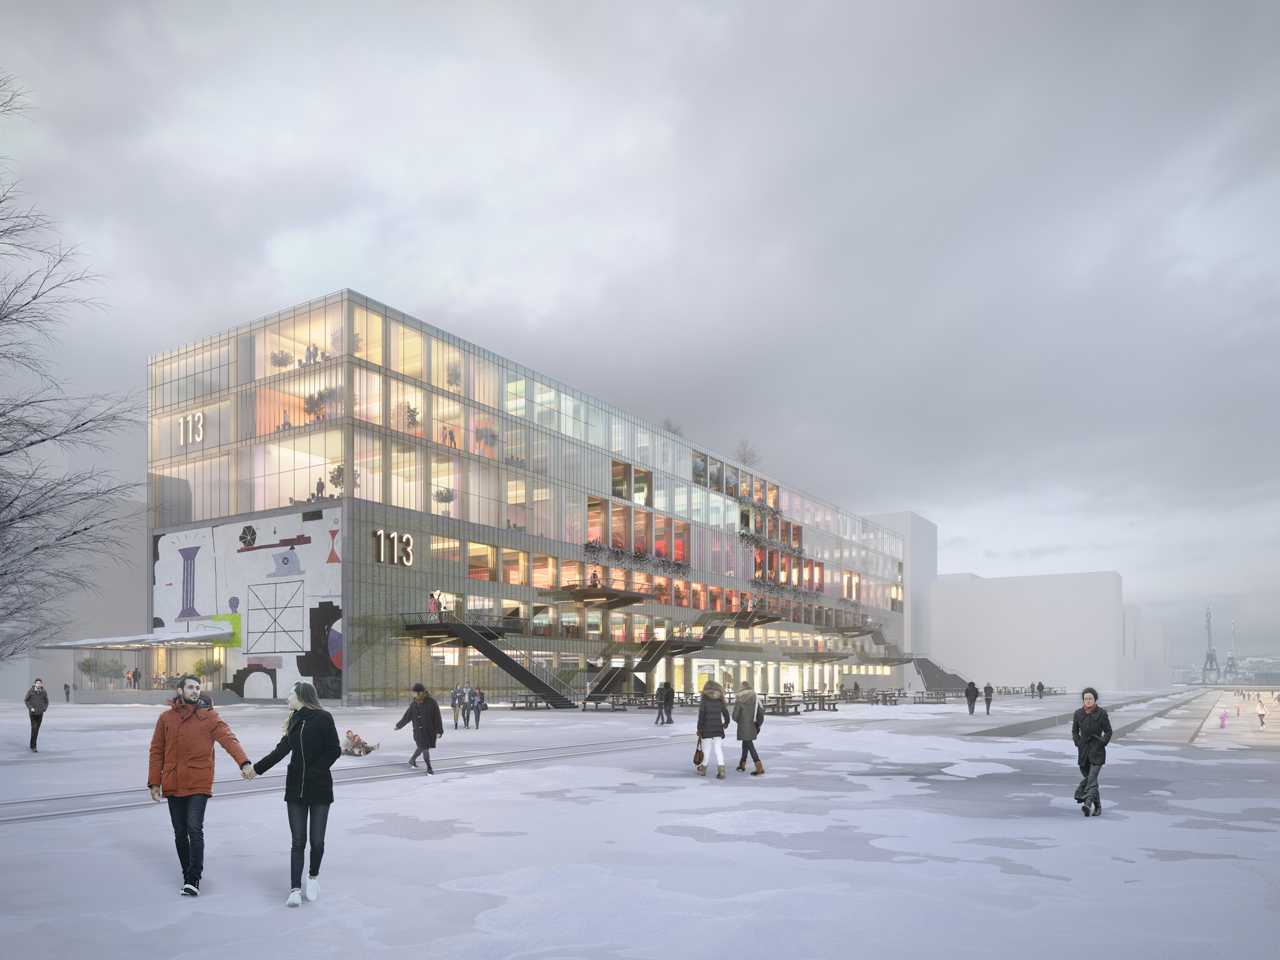 MVRDV reveal designs for  Magasin 113 Gothenburg